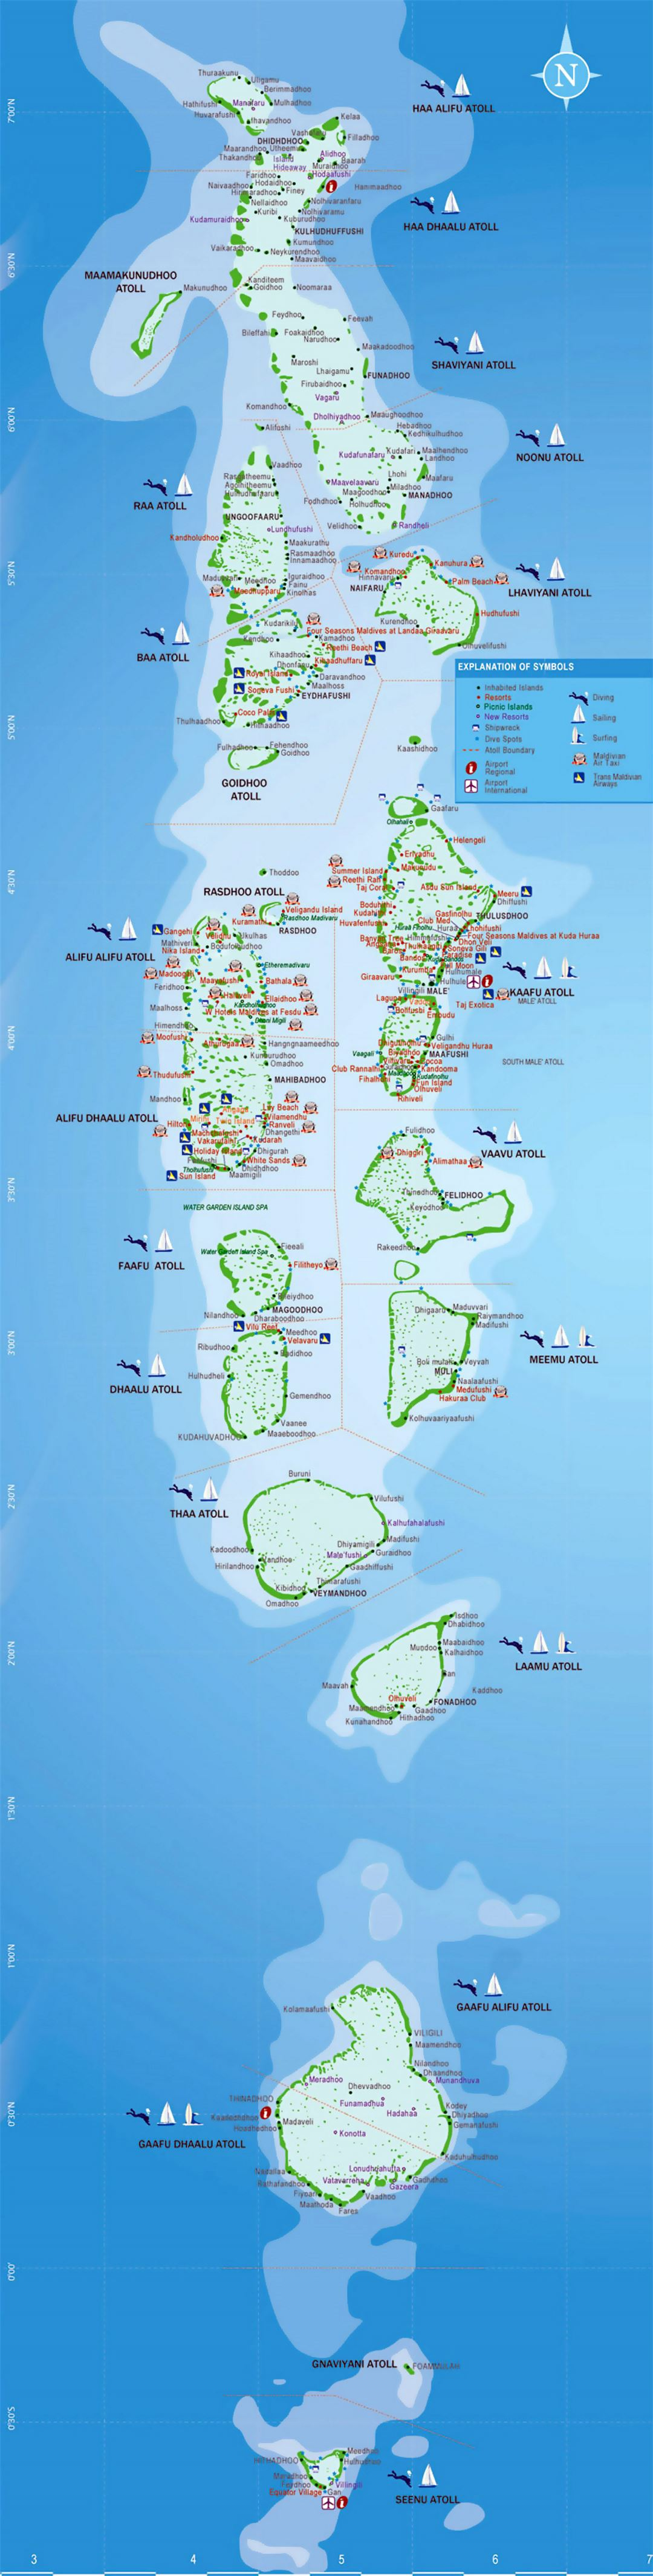 Large Map Of Maldives With Atolls Resorts And Activities Details - Maldives map world